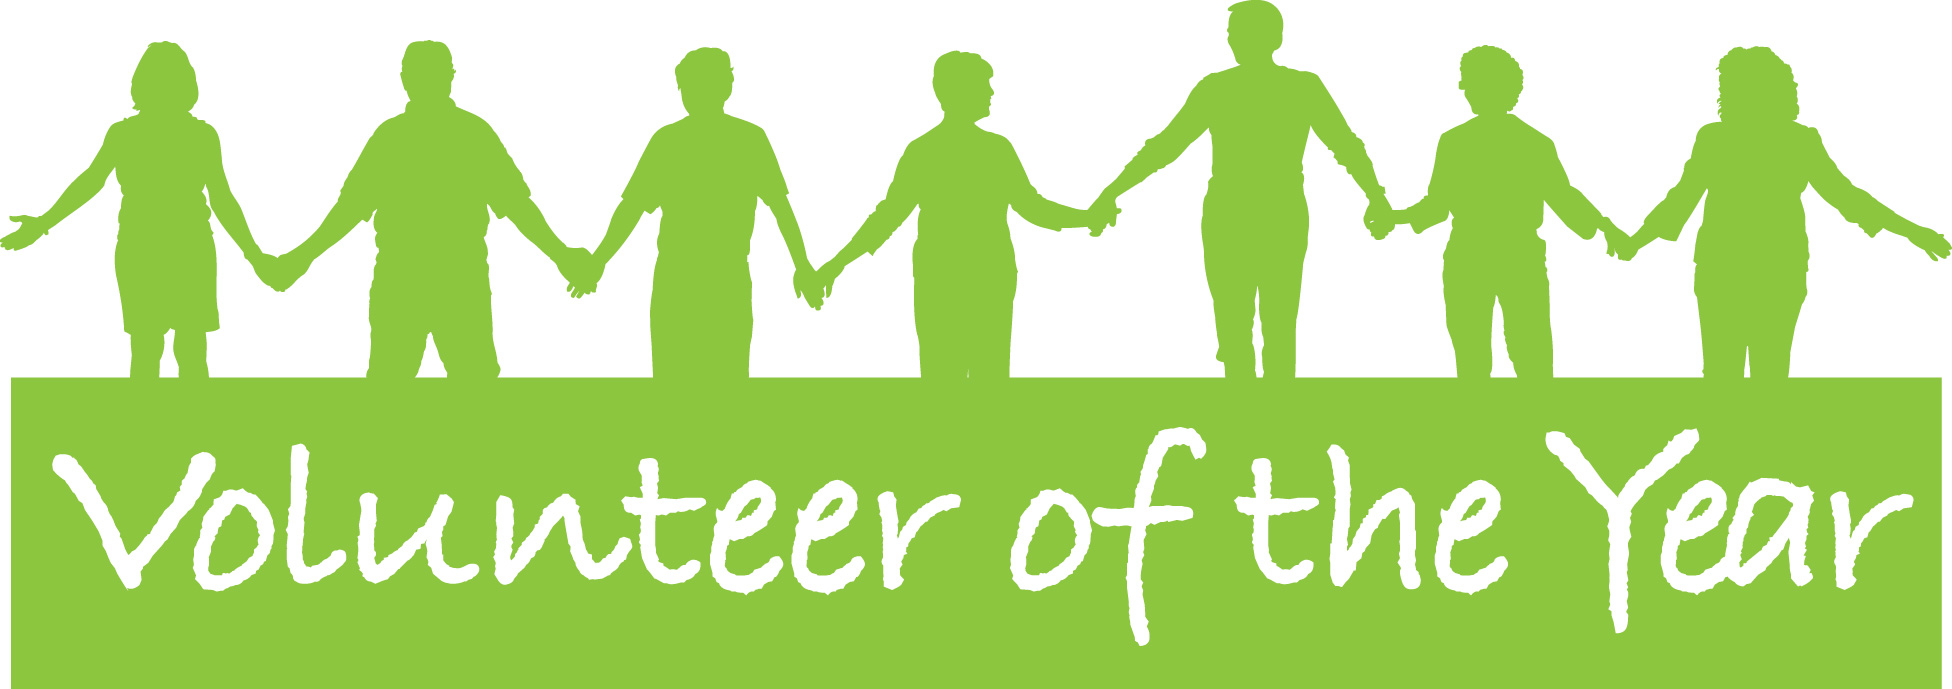 WA Volunteer of the Year Awards « RTRFM / The Sound ...